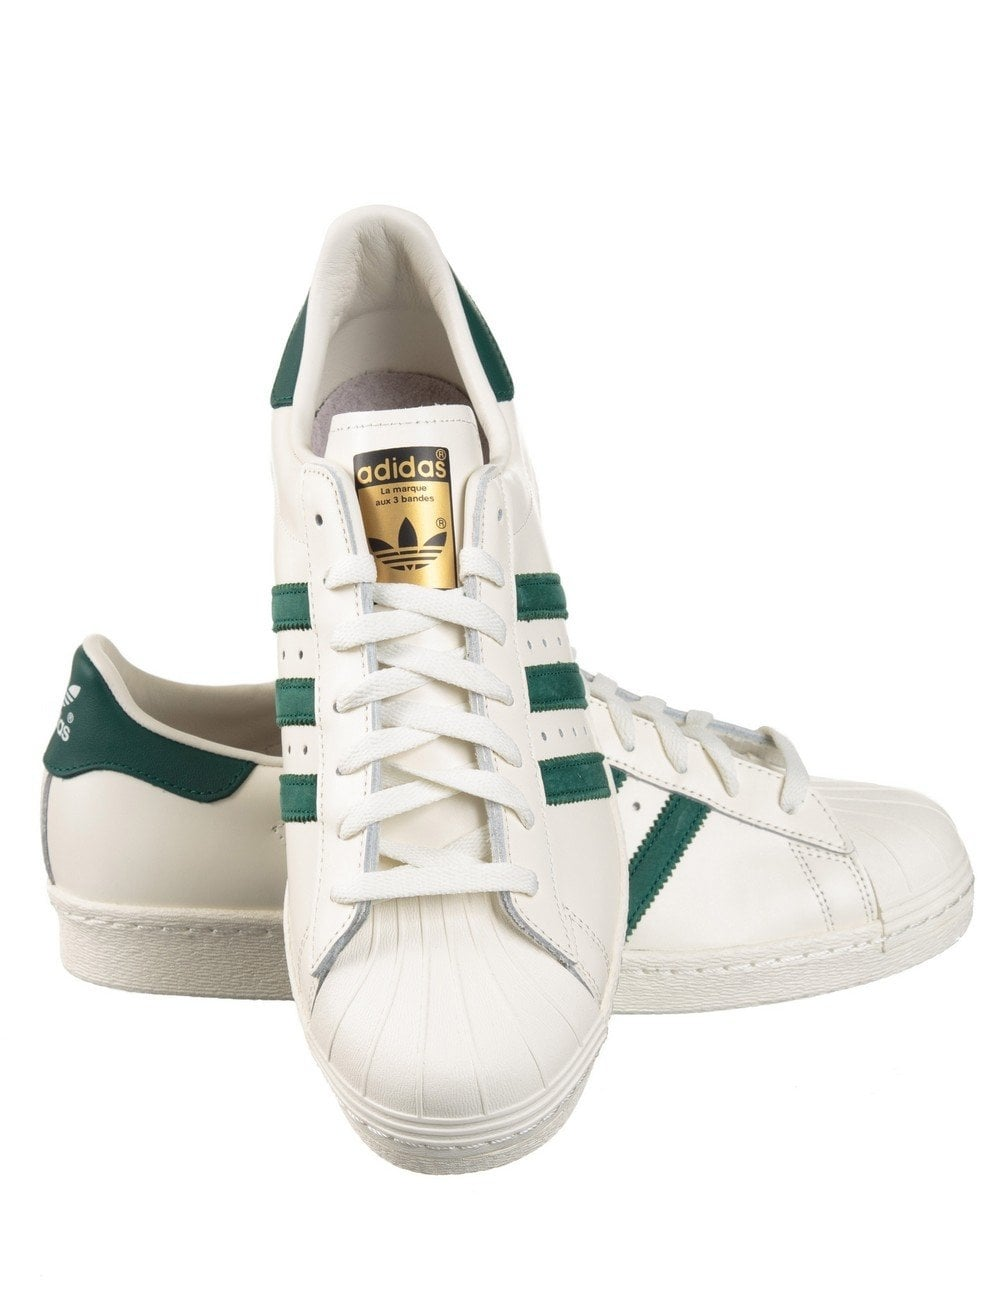 reputable site 40d1b 56a73 Superstar 80s Delux Shoes - Vintage White/Green